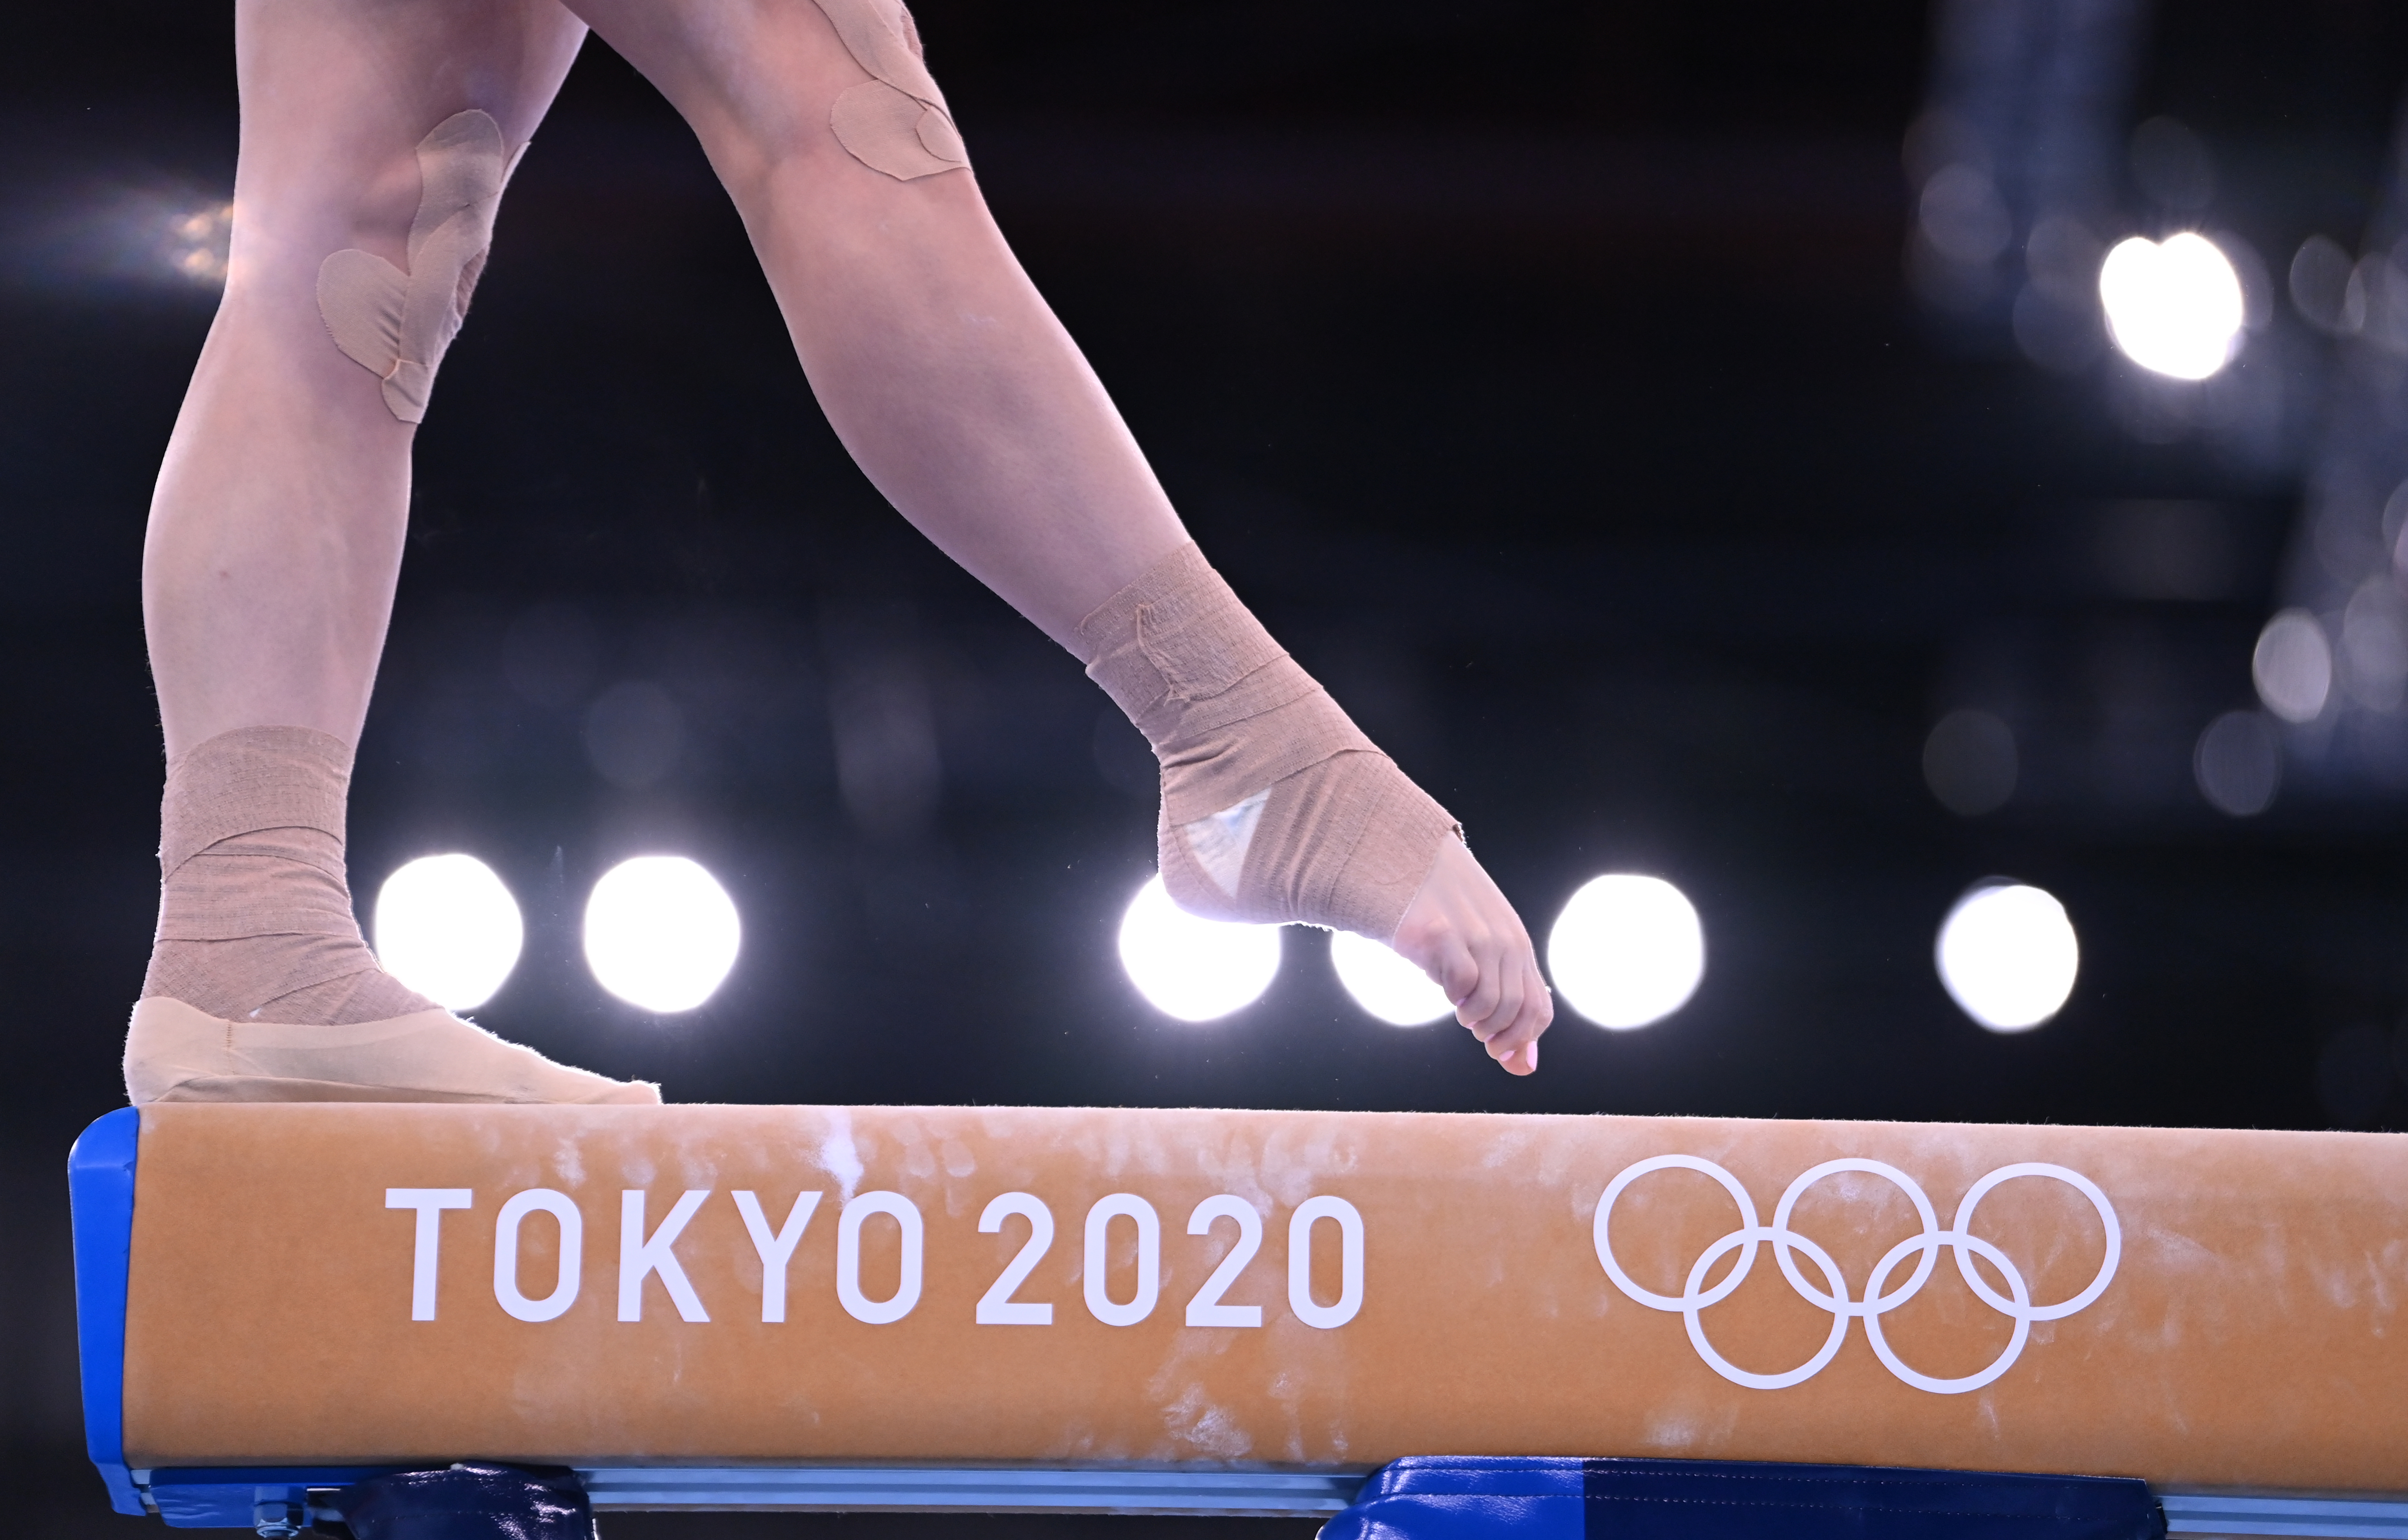 Tokyo 2020 Olympics - Gymnastics Artistic Training - Ariake Gymnastics Centre, Tokyo, Japan - July 22, 2021 A Russian Olympic Committee gymnast on the balance beam during training REUTERS/Dylan Martinez